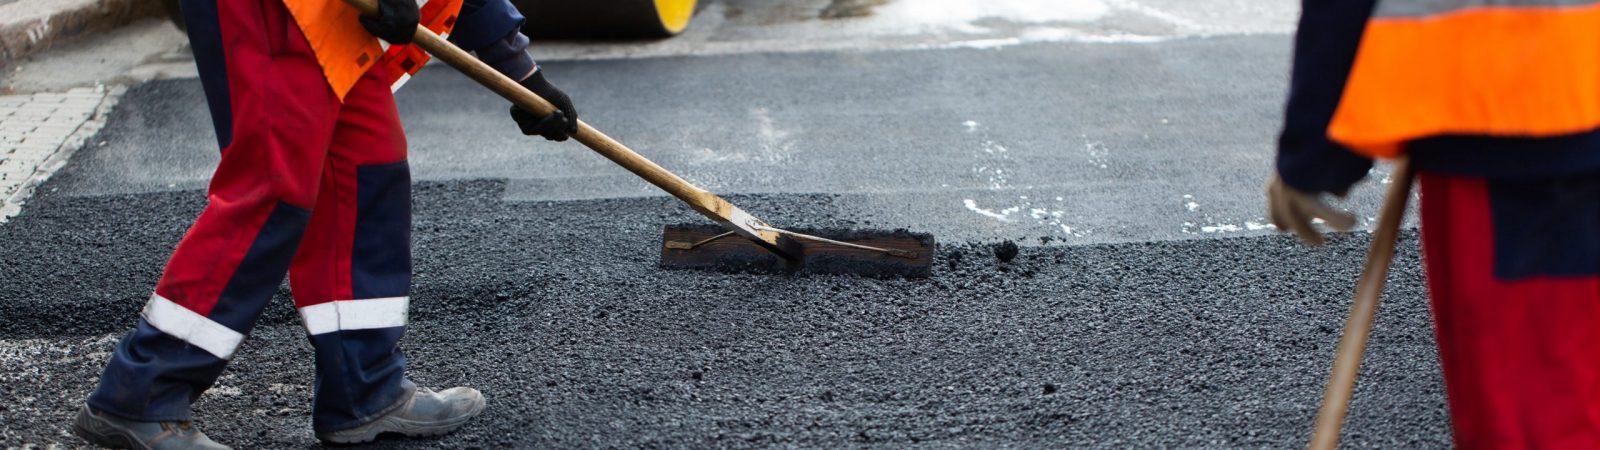 What are the different types of road surfaces